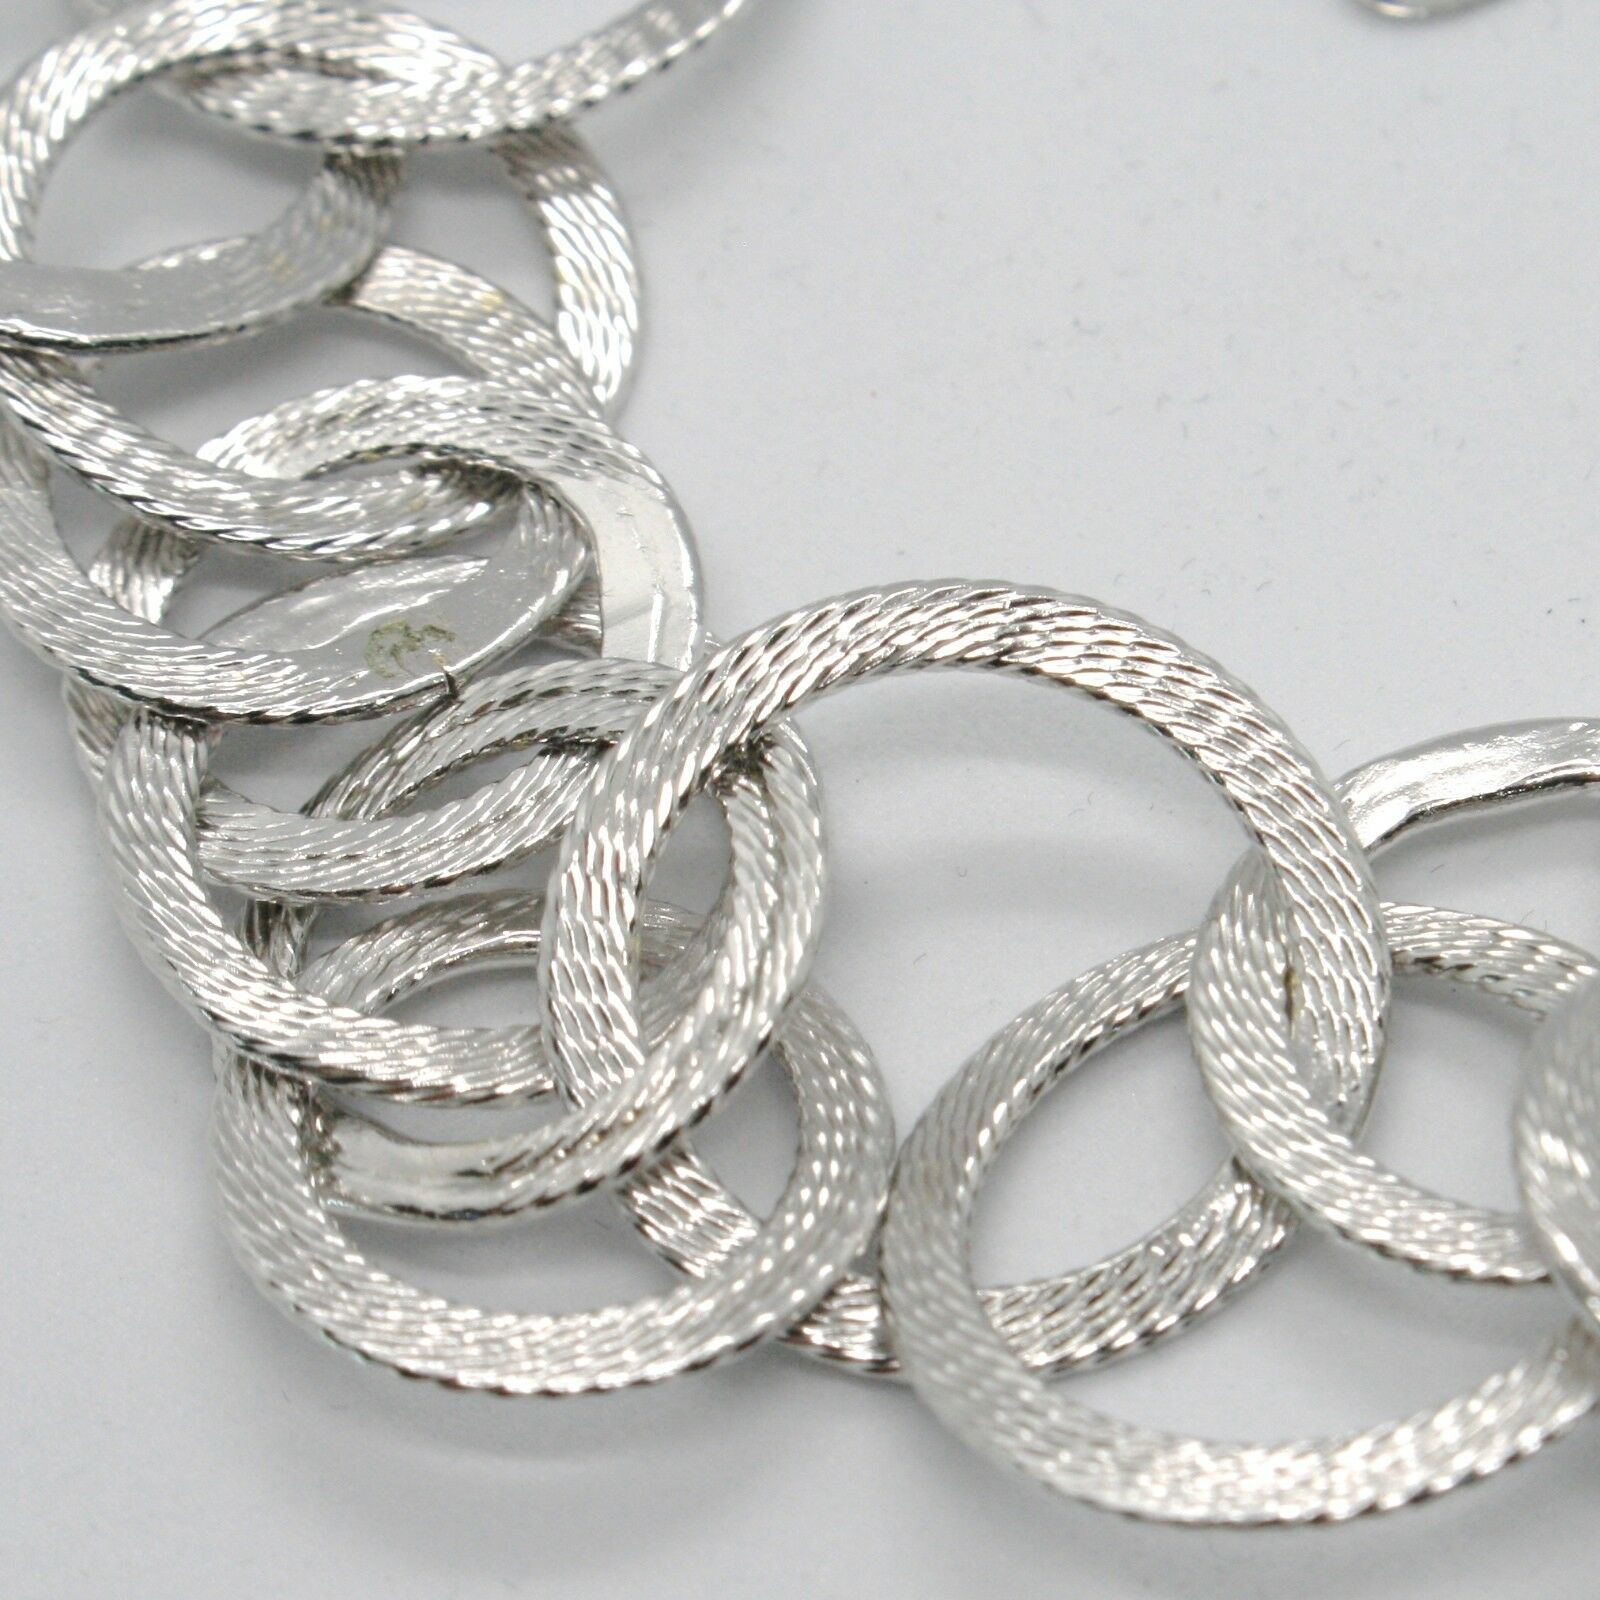 Silver 925 Bracelet with Circles Worked by Mary Jane Ielpo , Made in Italy